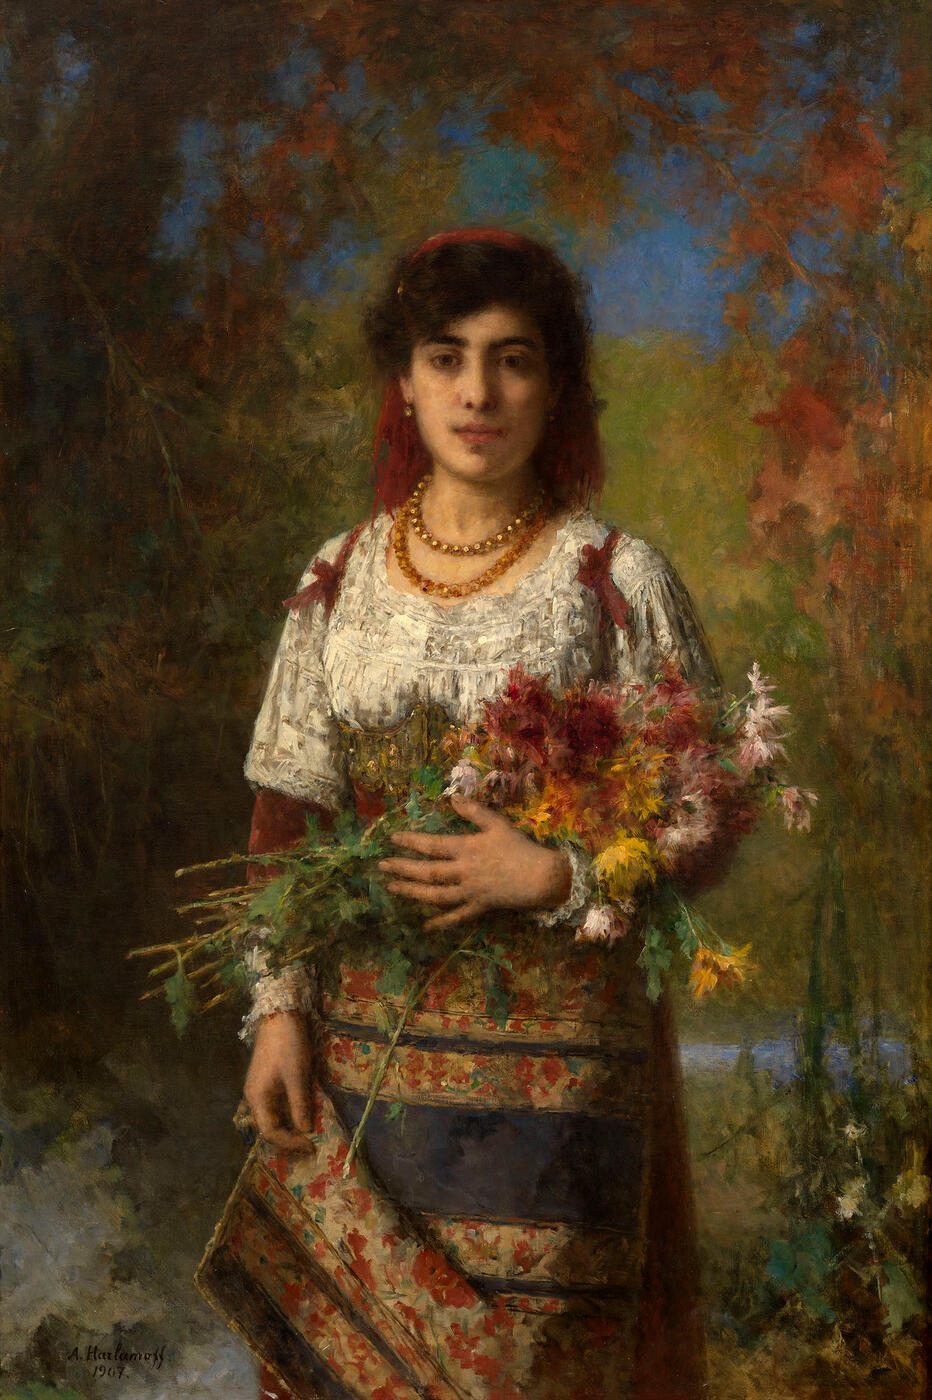 Gypsy Girl with Flowers